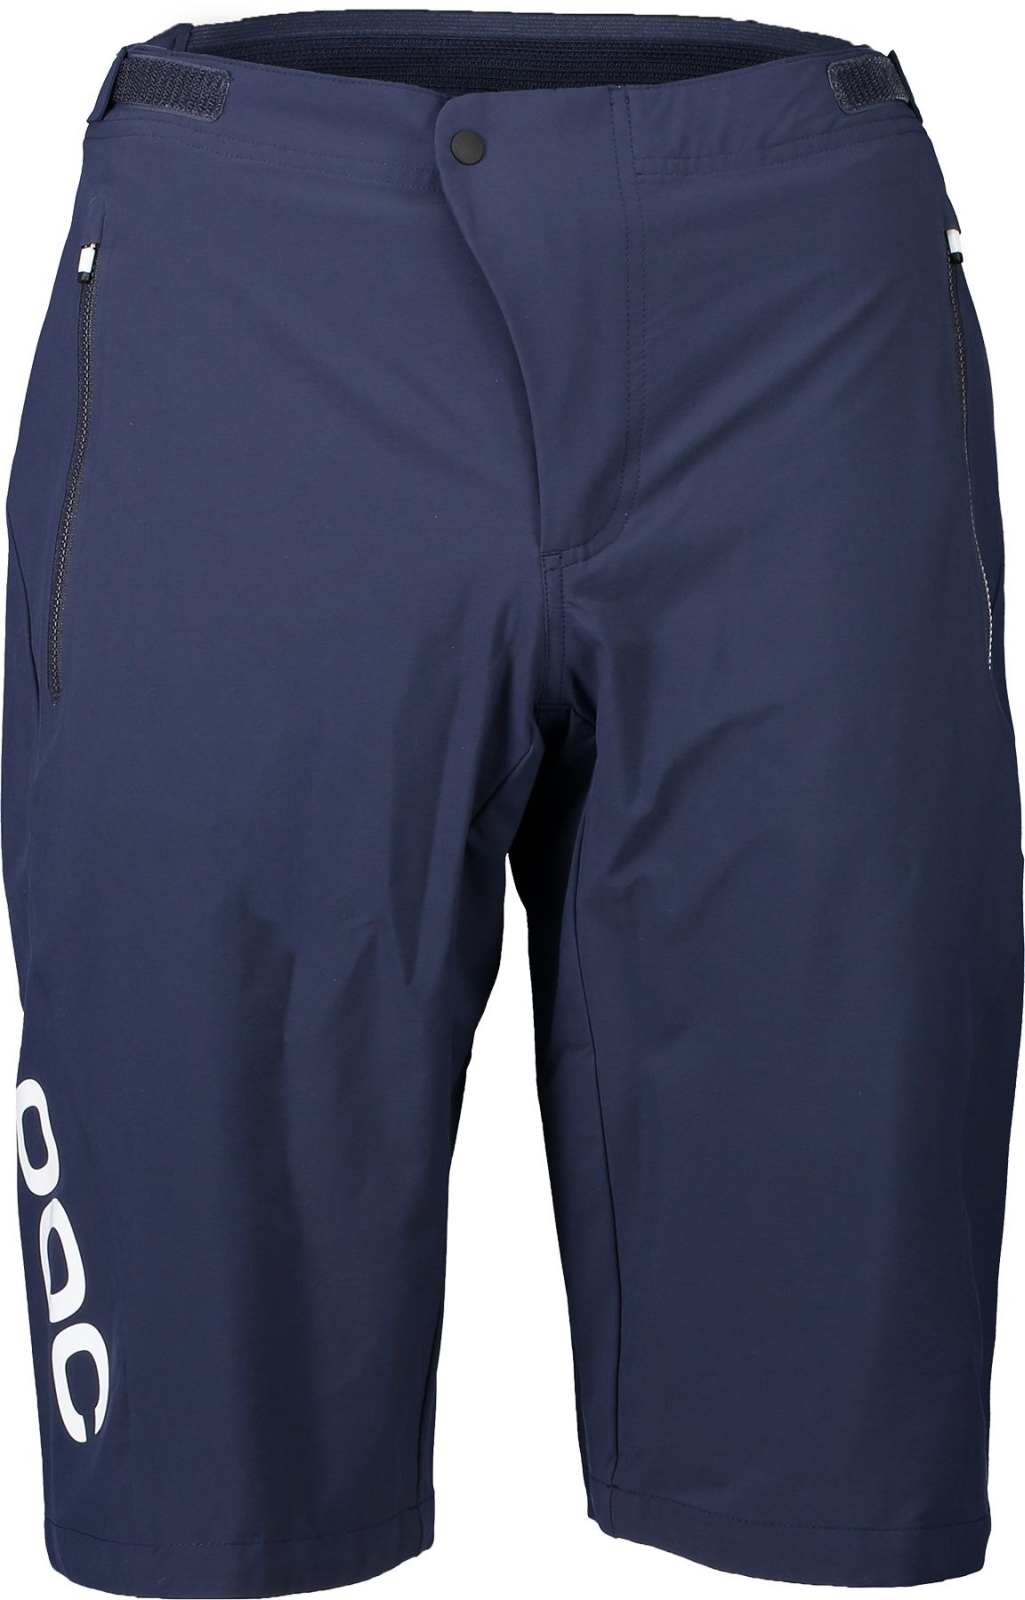 POC Essential Enduro Shorts - Turmaline Navy S